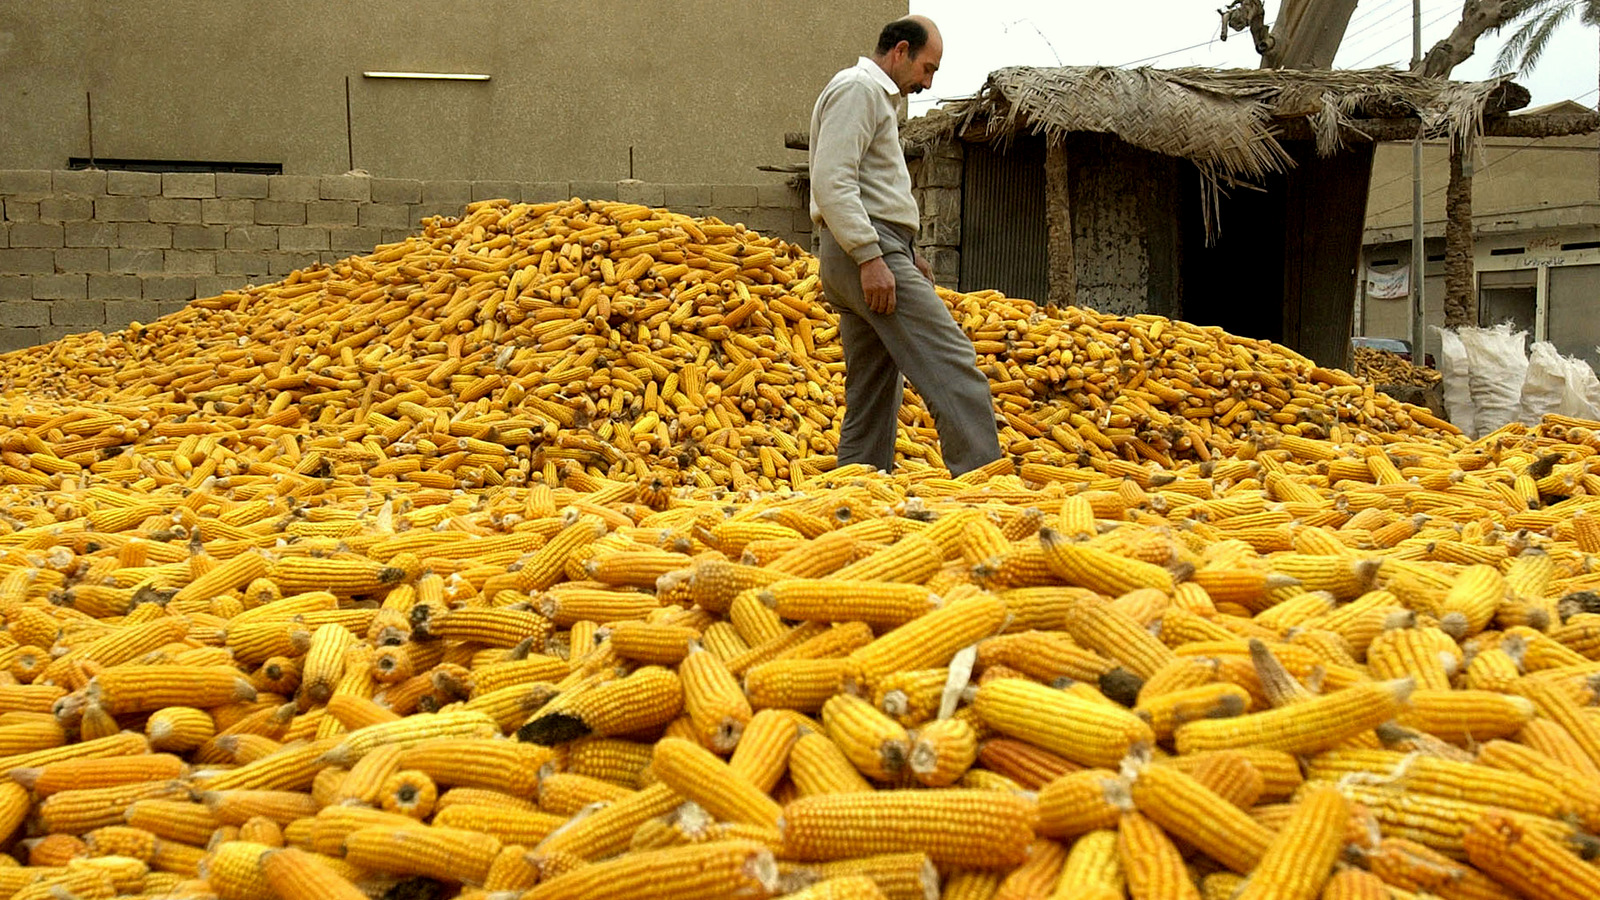 An Iraqi corn broker walks through his supply while preparing it to be shipped to retail markets Monday, Jan. 5, 2004 in a village north of Baghdad. (AP Photo/Julie Jacobson)